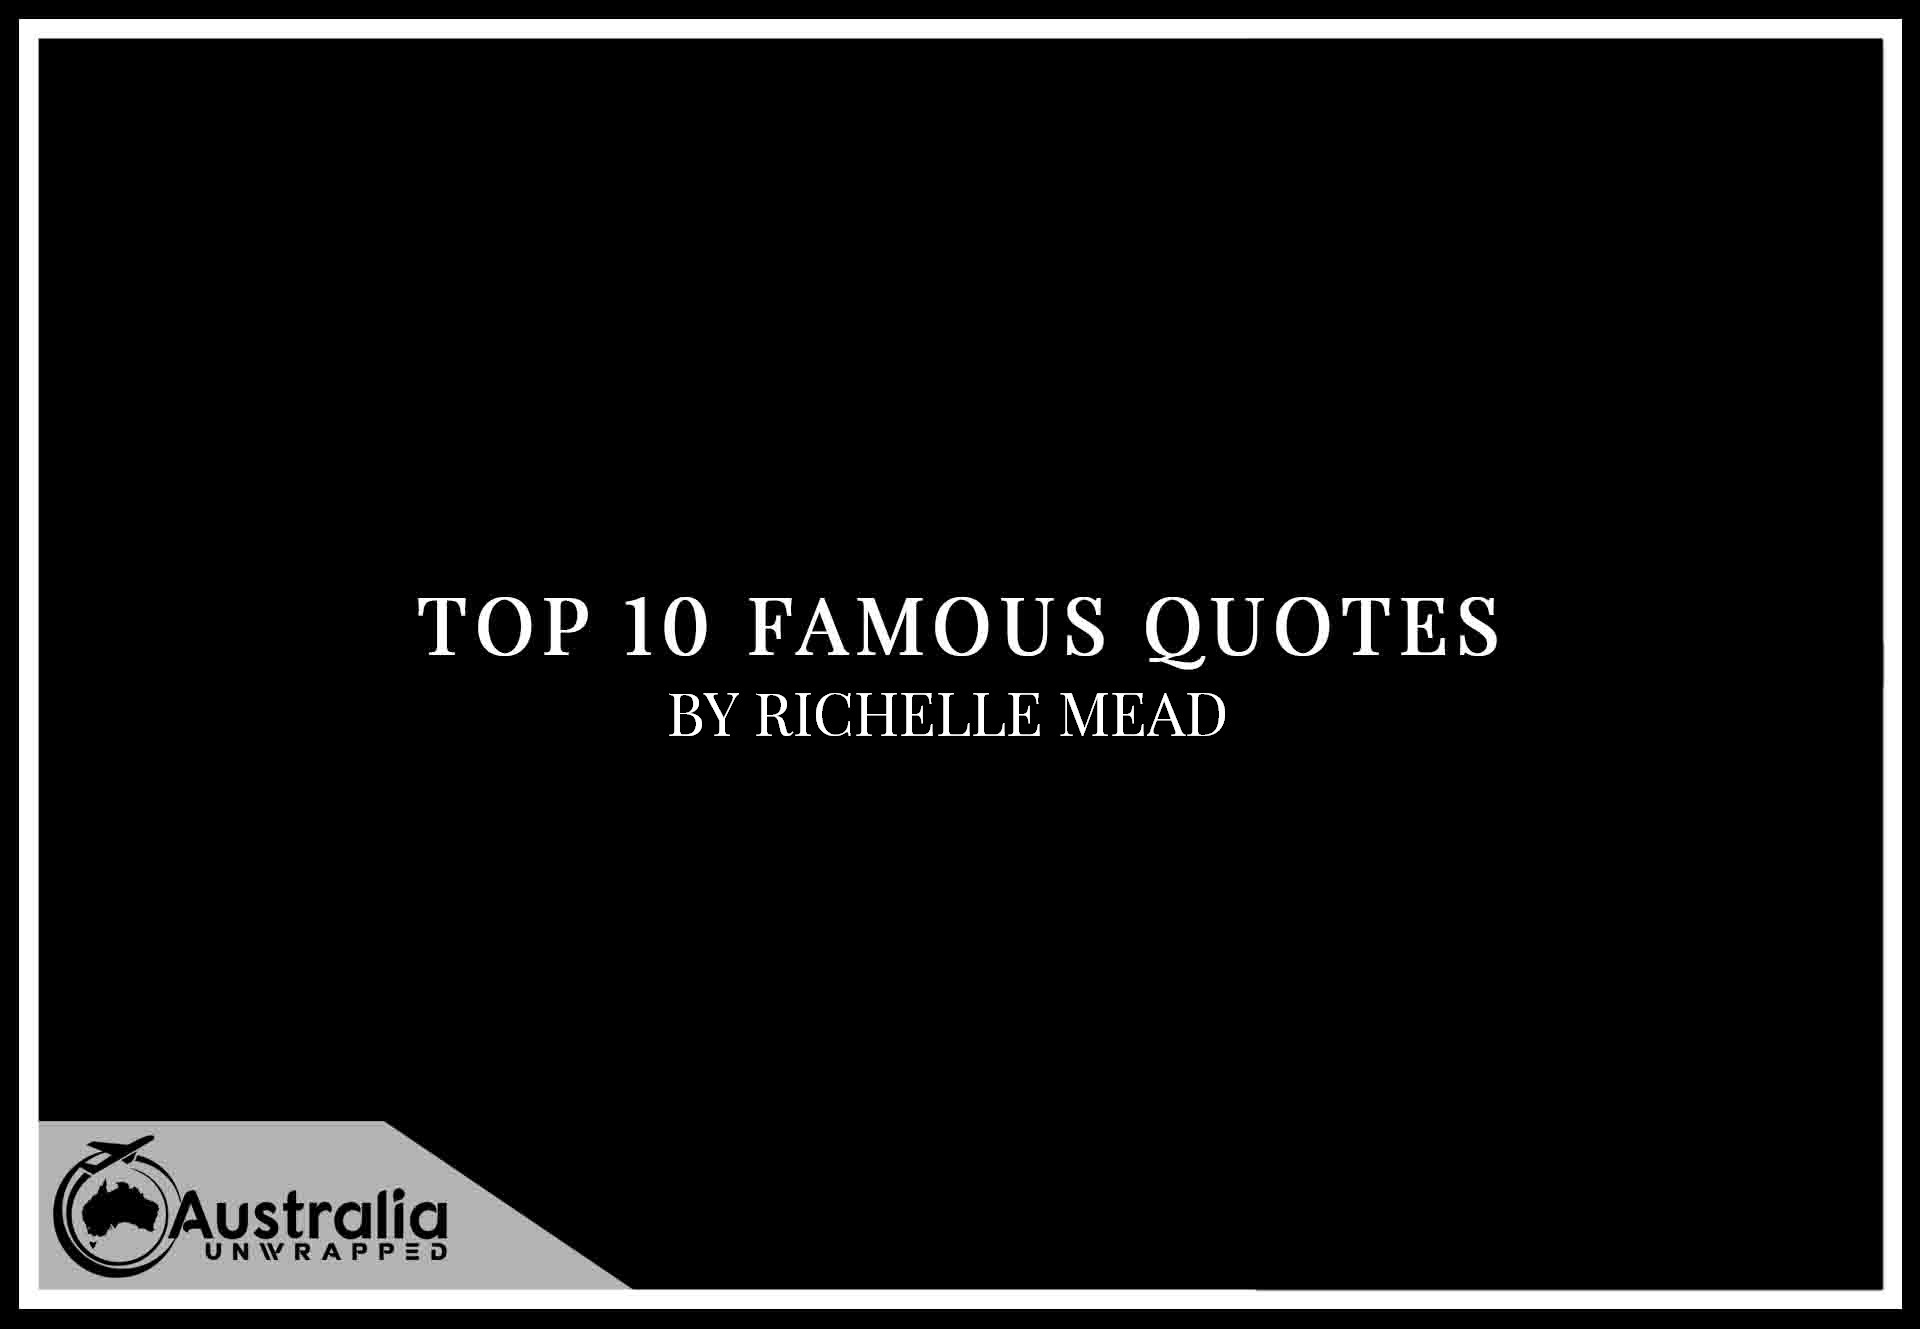 Top 10 Famous Quotes by Author Richelle Mead